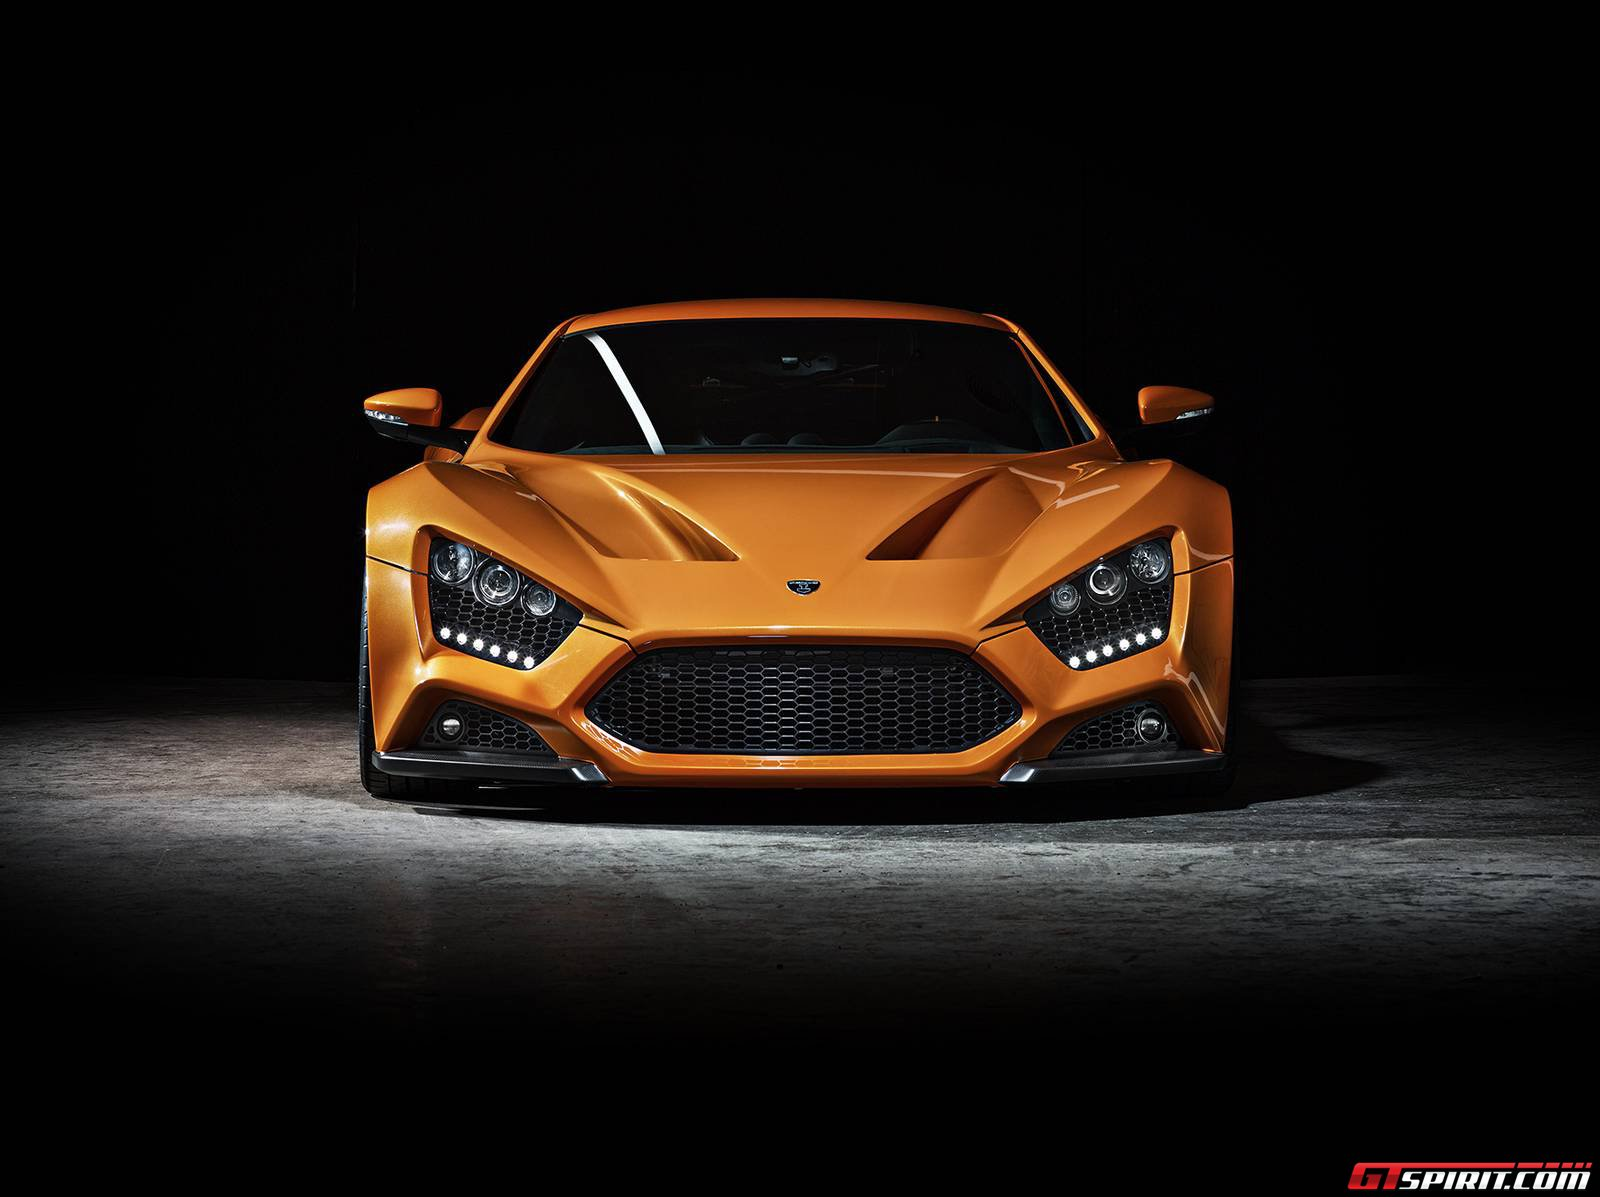 Awesome Cars For Sale >> Official: 2014 Zenvo ST1 - GTspirit